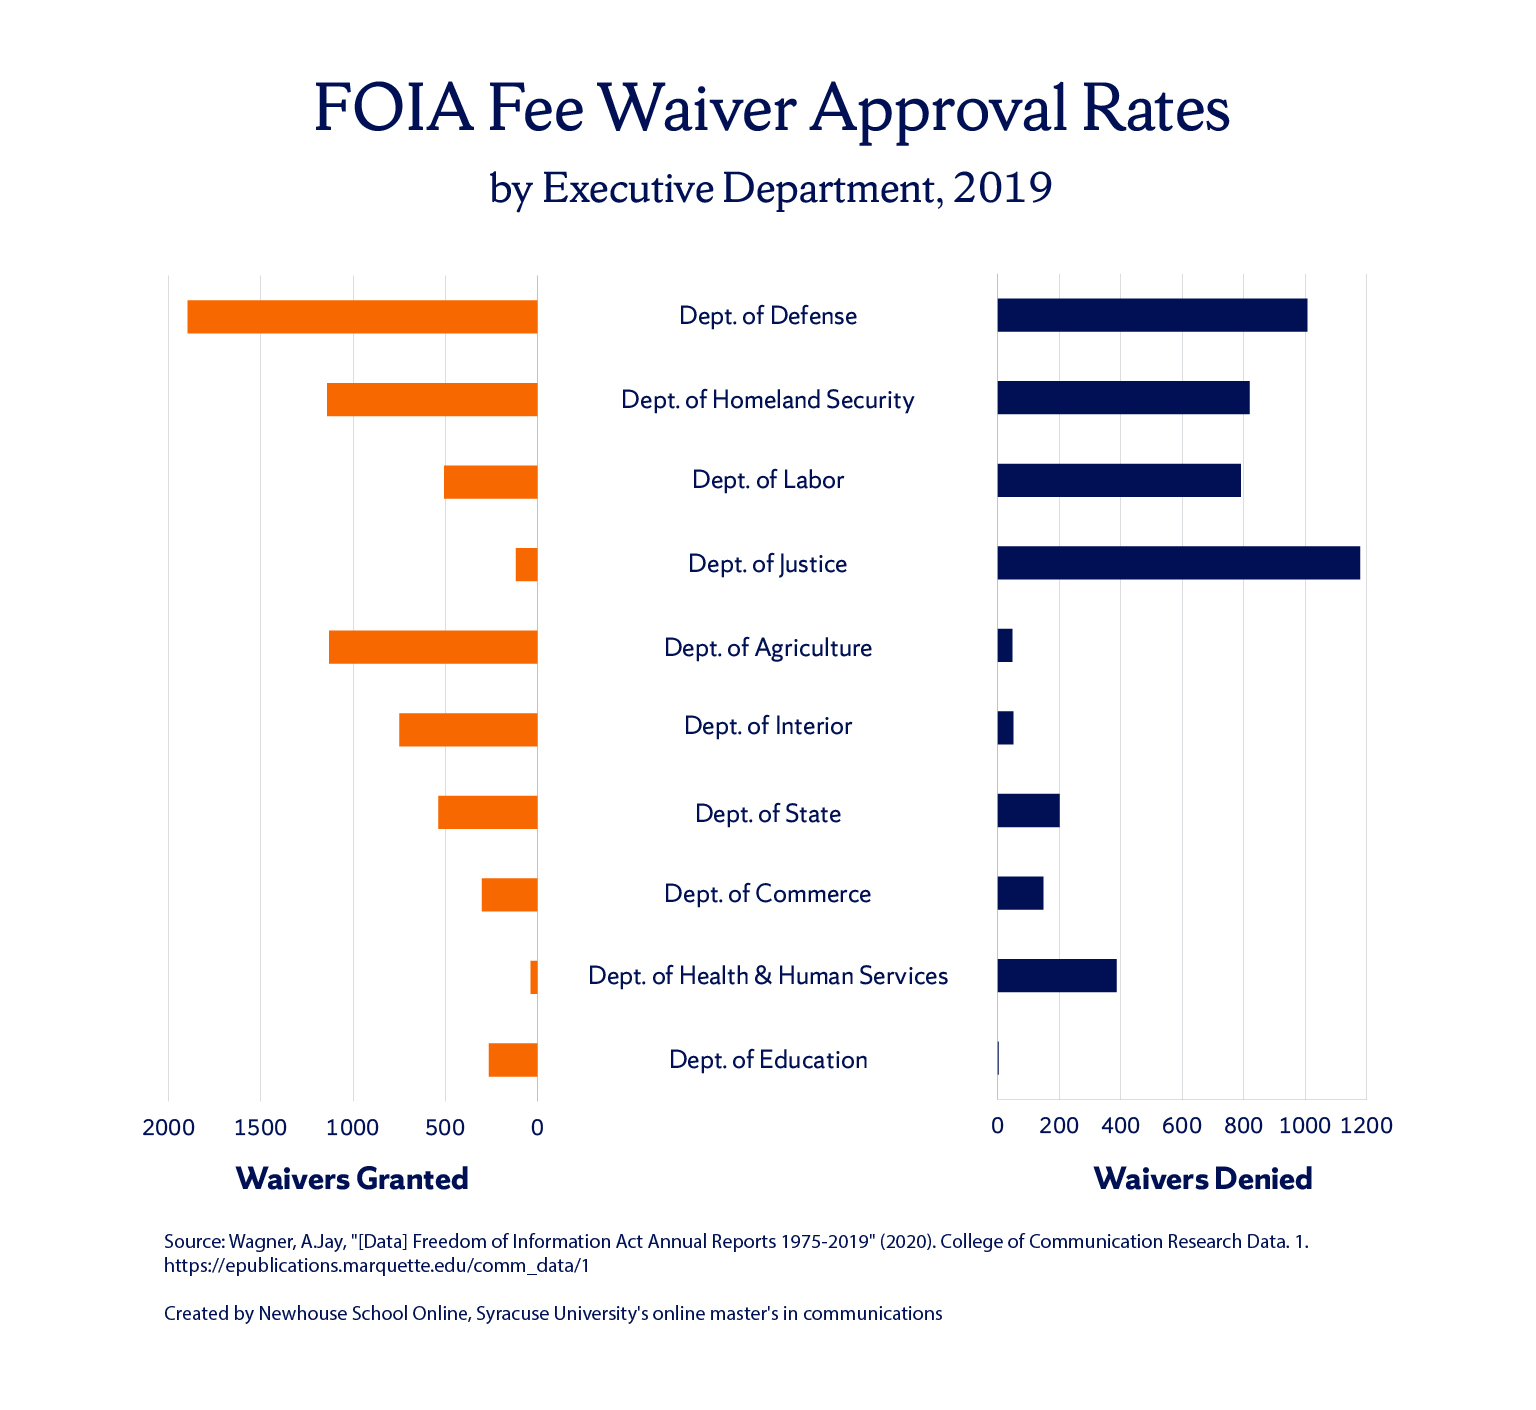 bar graph of number of FOIA fee waivers granted and denied per executive department in 2019